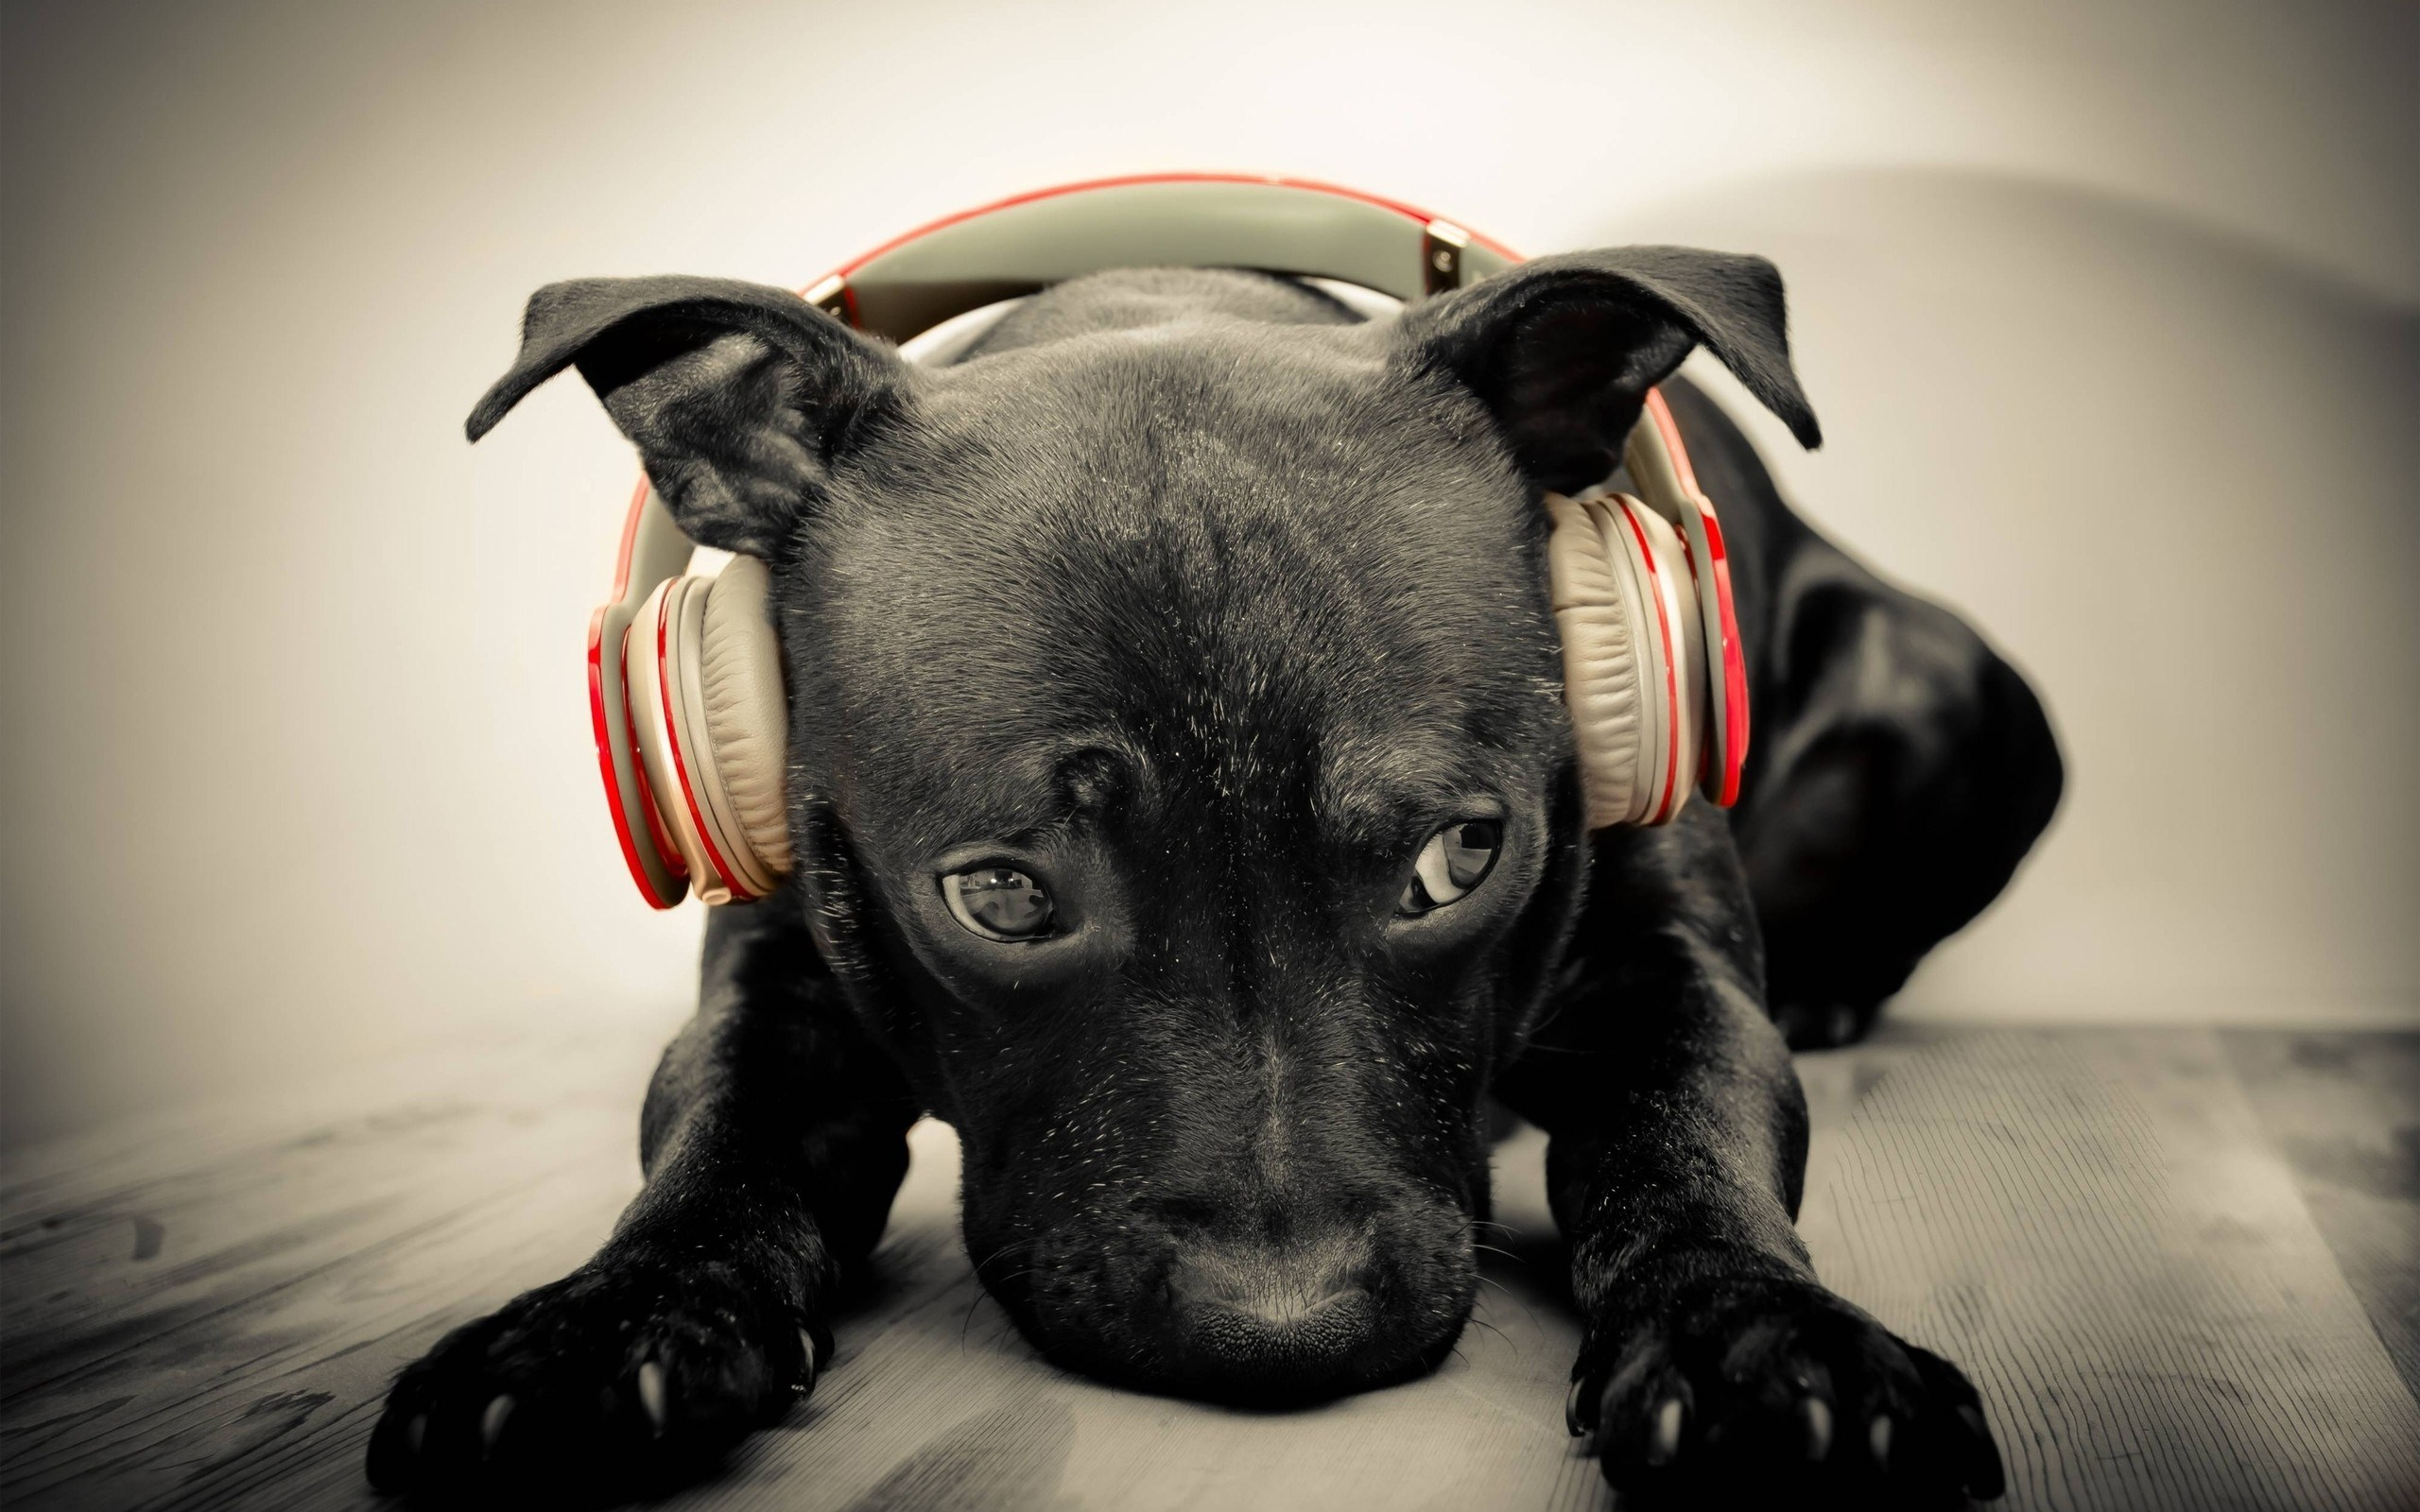 black dog headphones music wide high quality wallpaper photos for 2560x1600